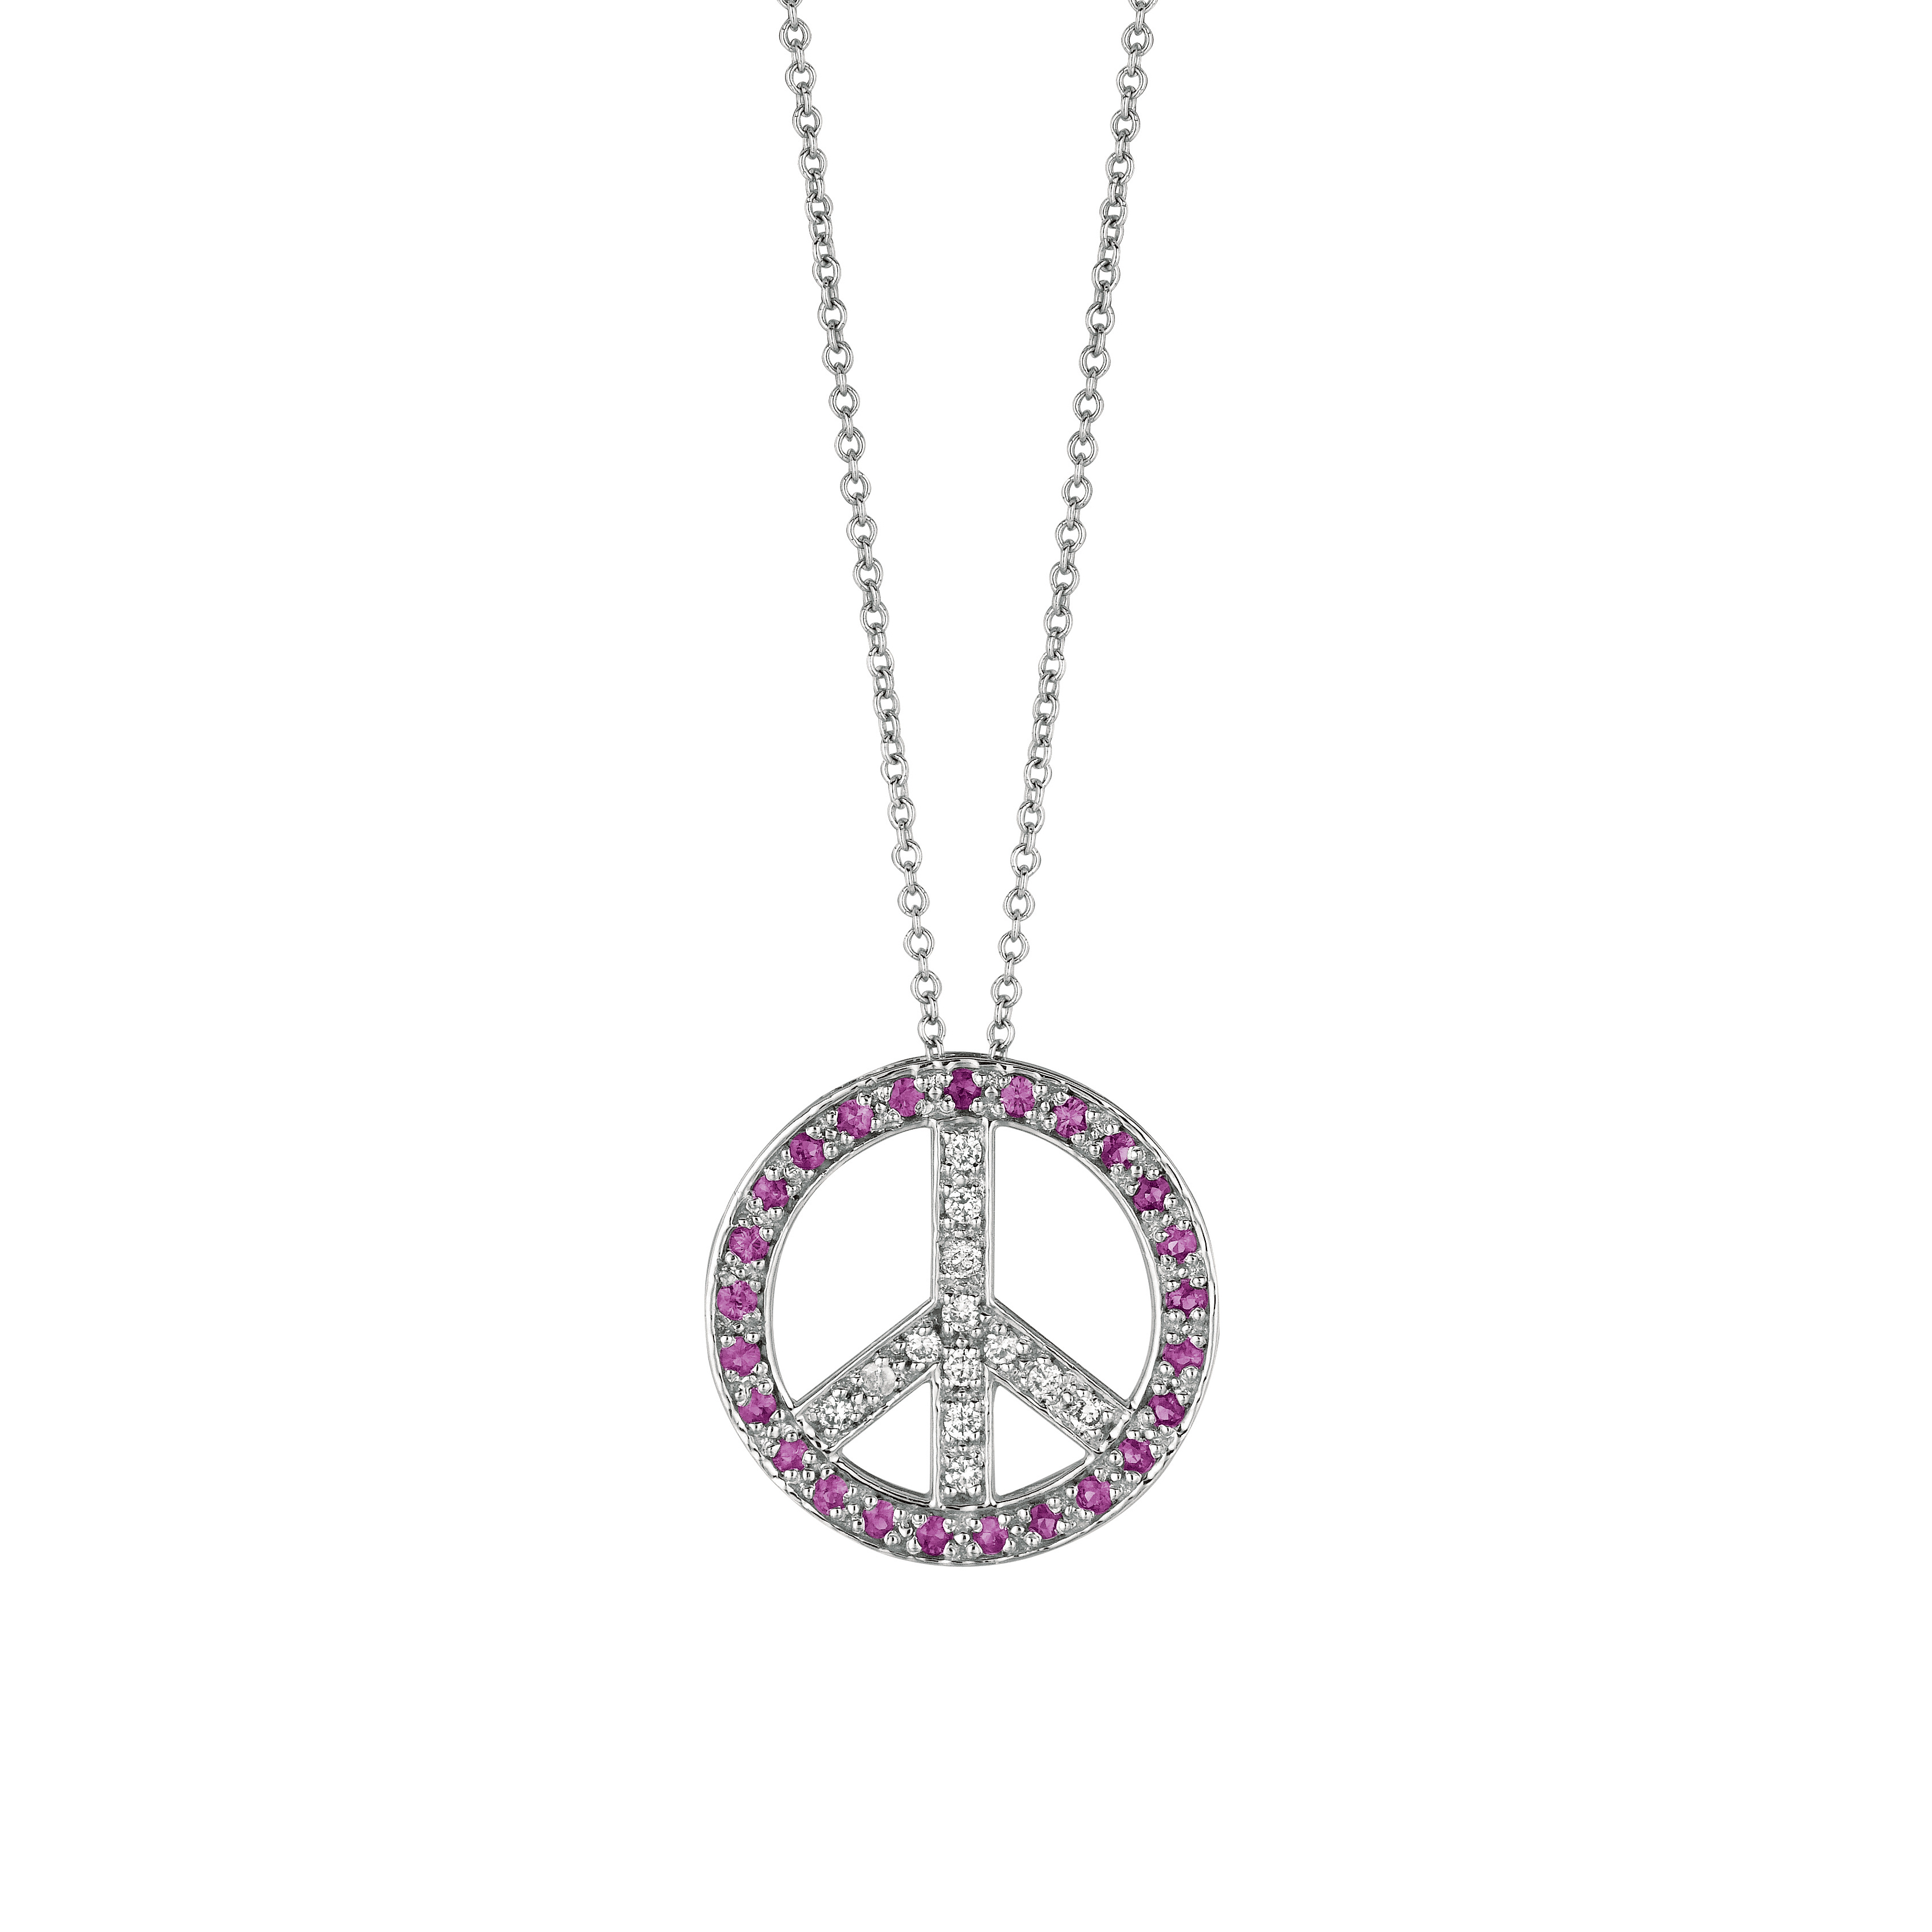 0 51 Ct Pink Sapphire Amp Diamond Peace Sign Pendant Necklace Set In 14k White Gol